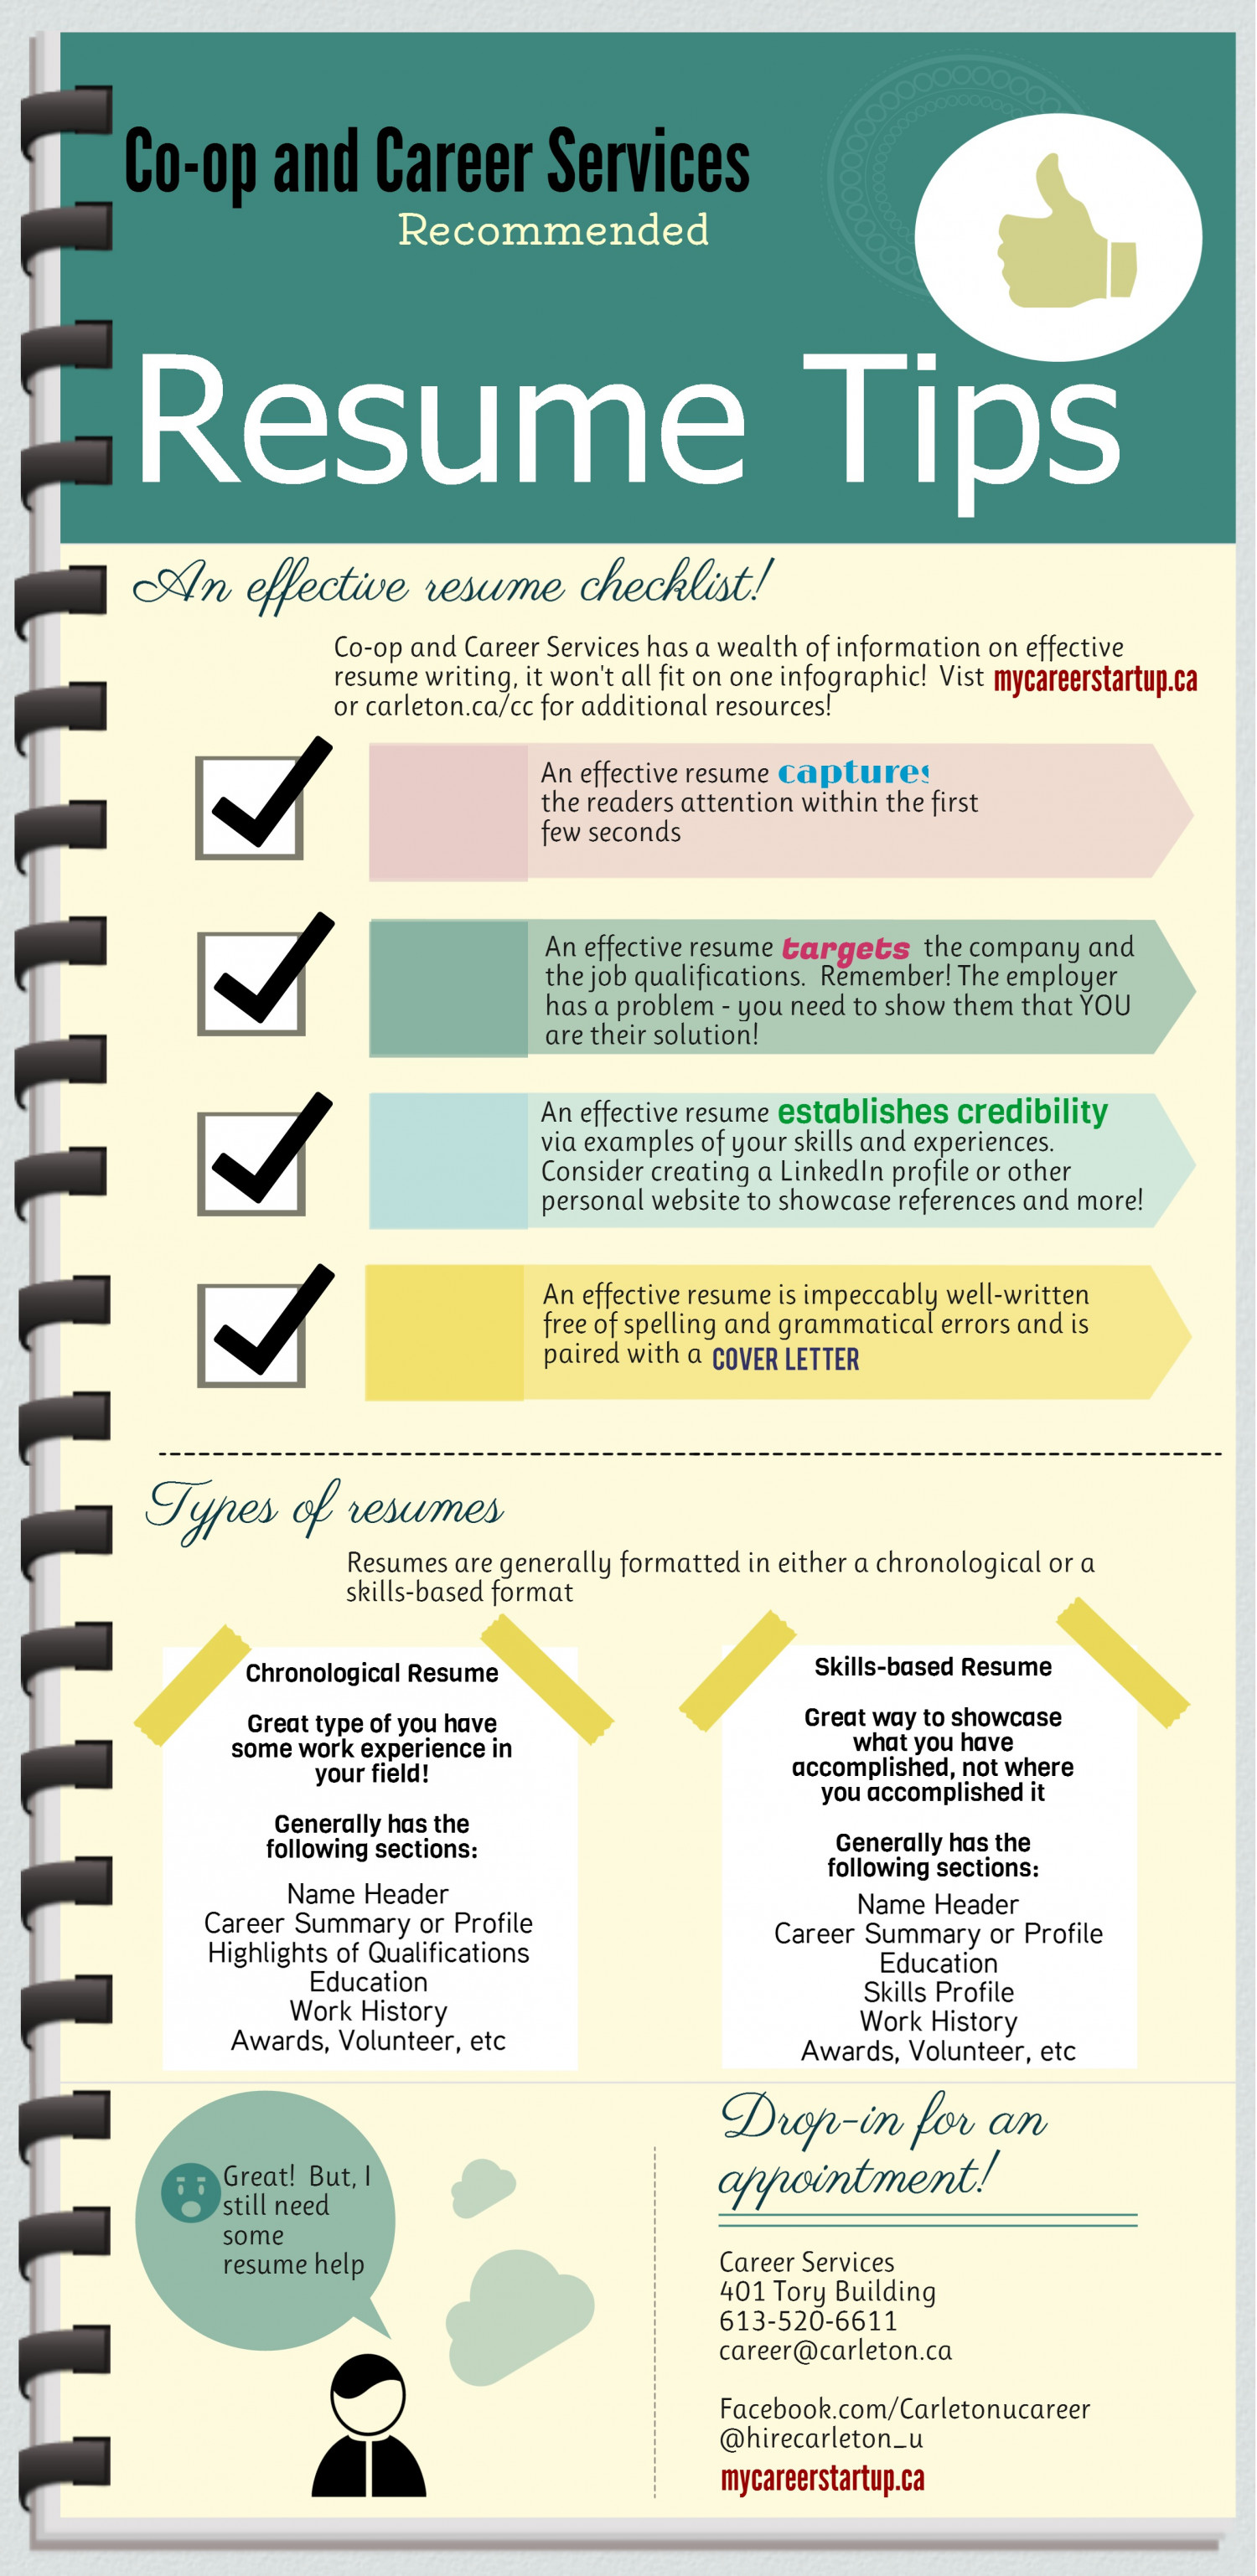 Resume Tips: An Effective Resume Checklists Infographic  Effective Resume